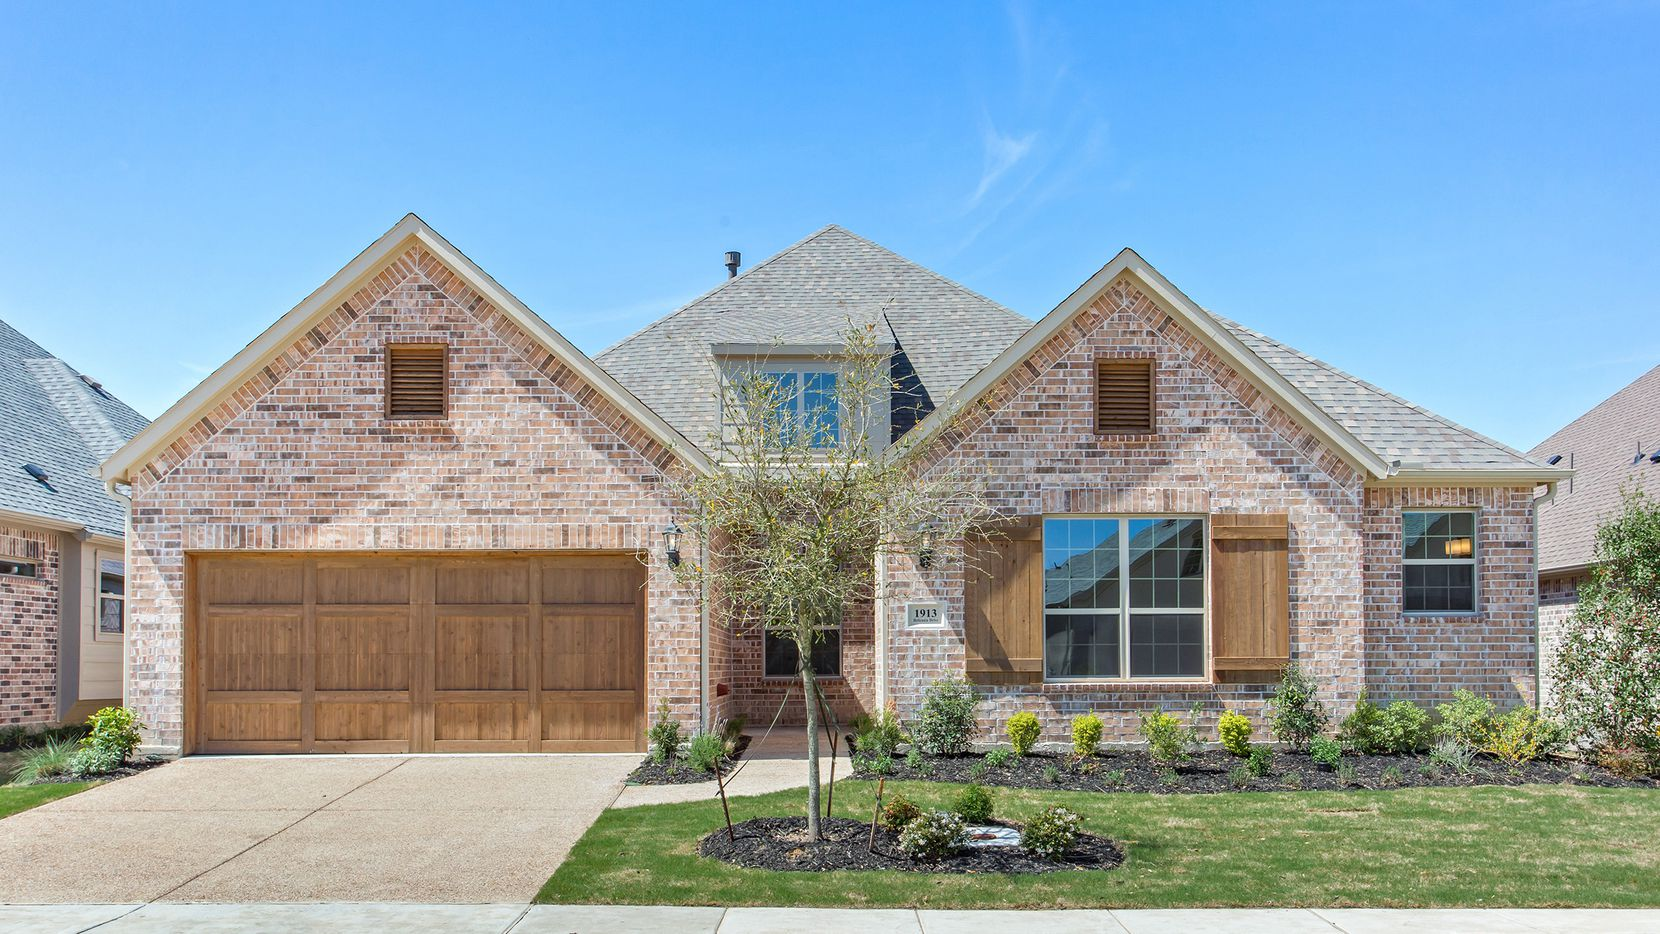 Opportunities are dwindling in Orchard Flower, a 55-plus community featuring low-maintenance living in Flower Mound.